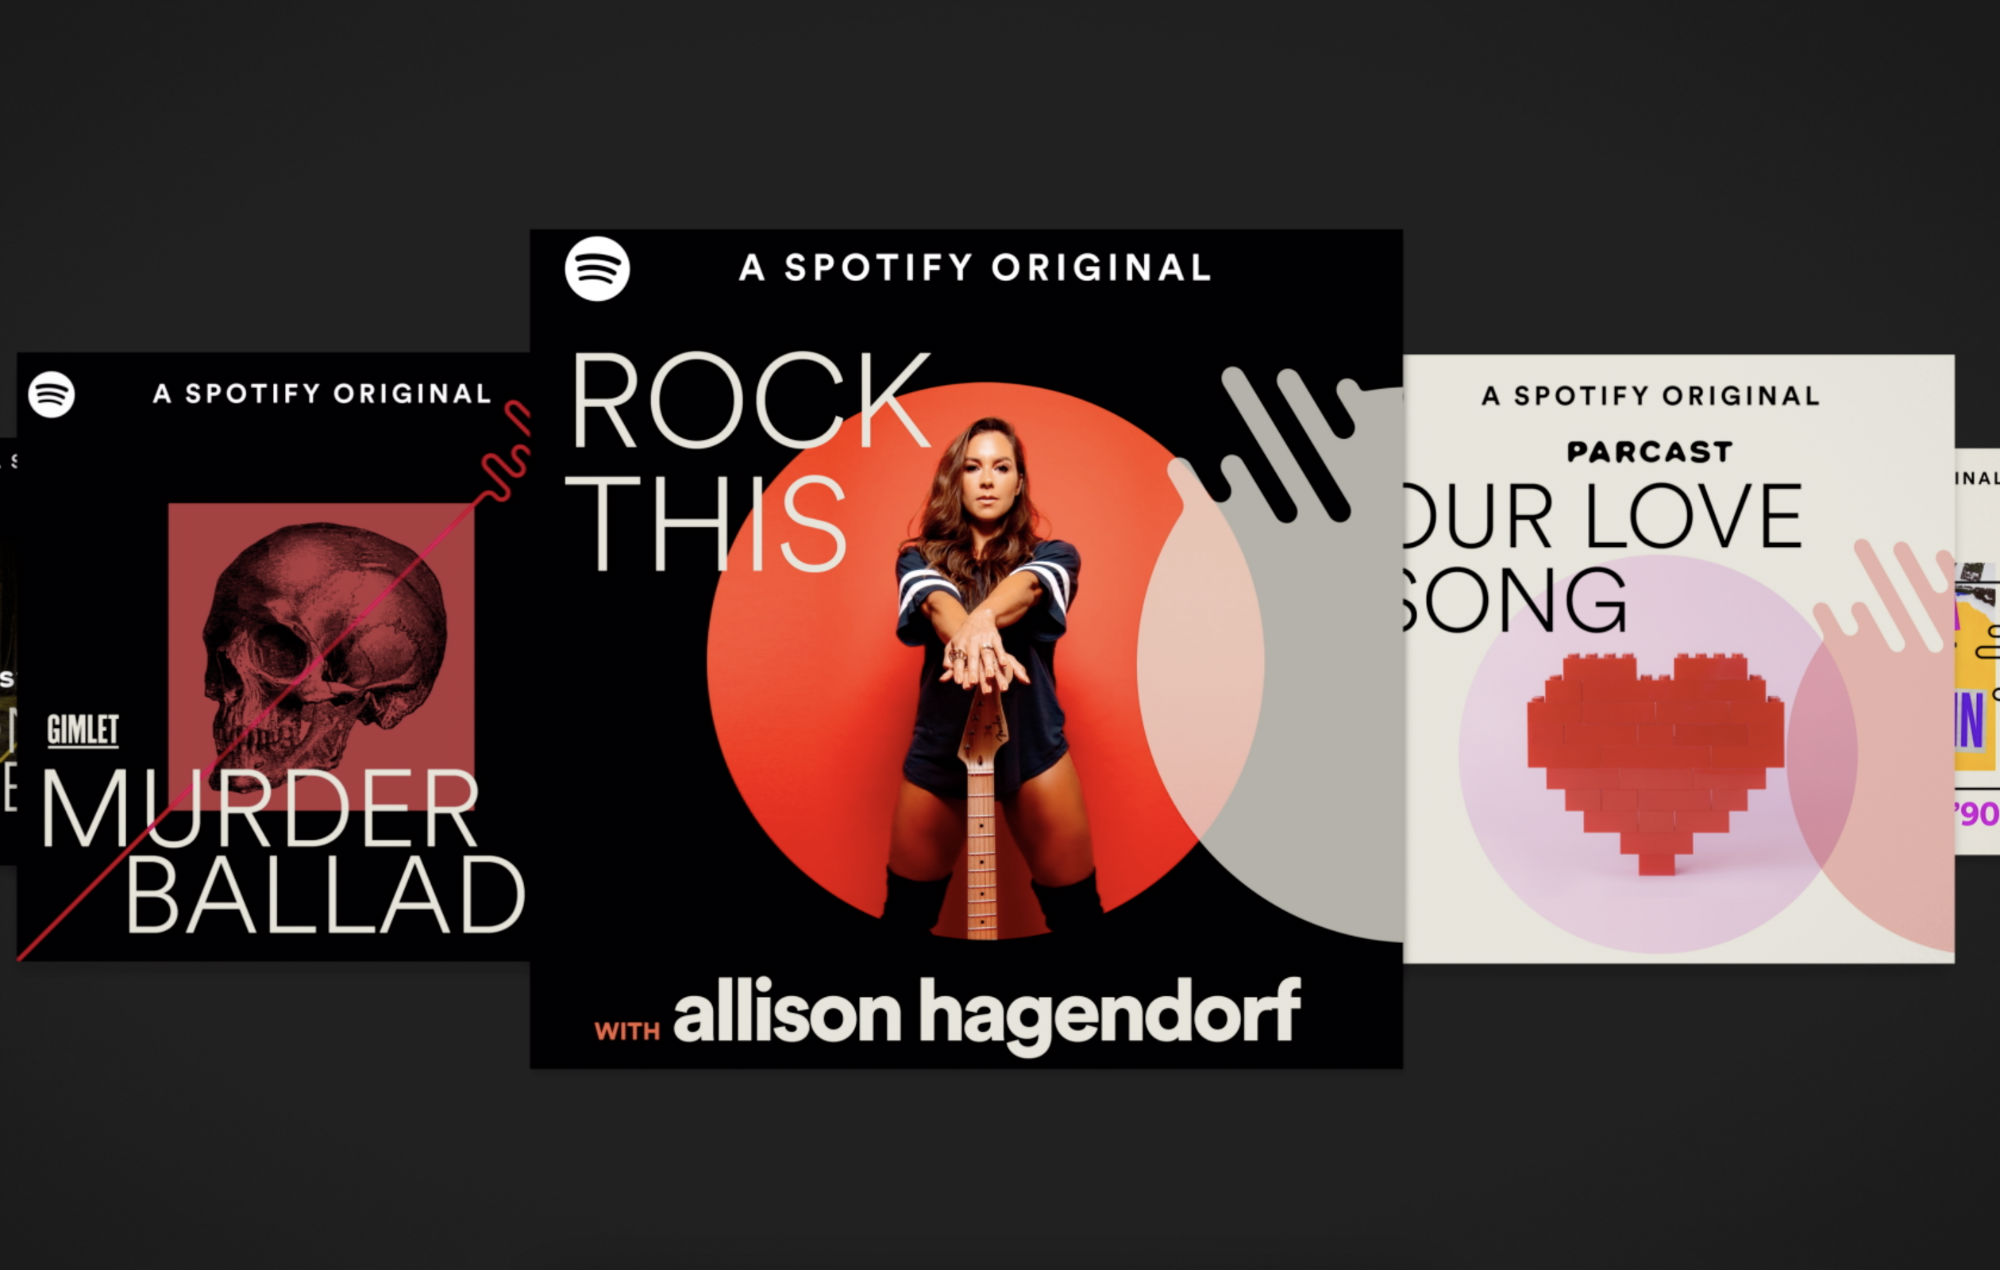 Spotify listen to new music podcasts and songs